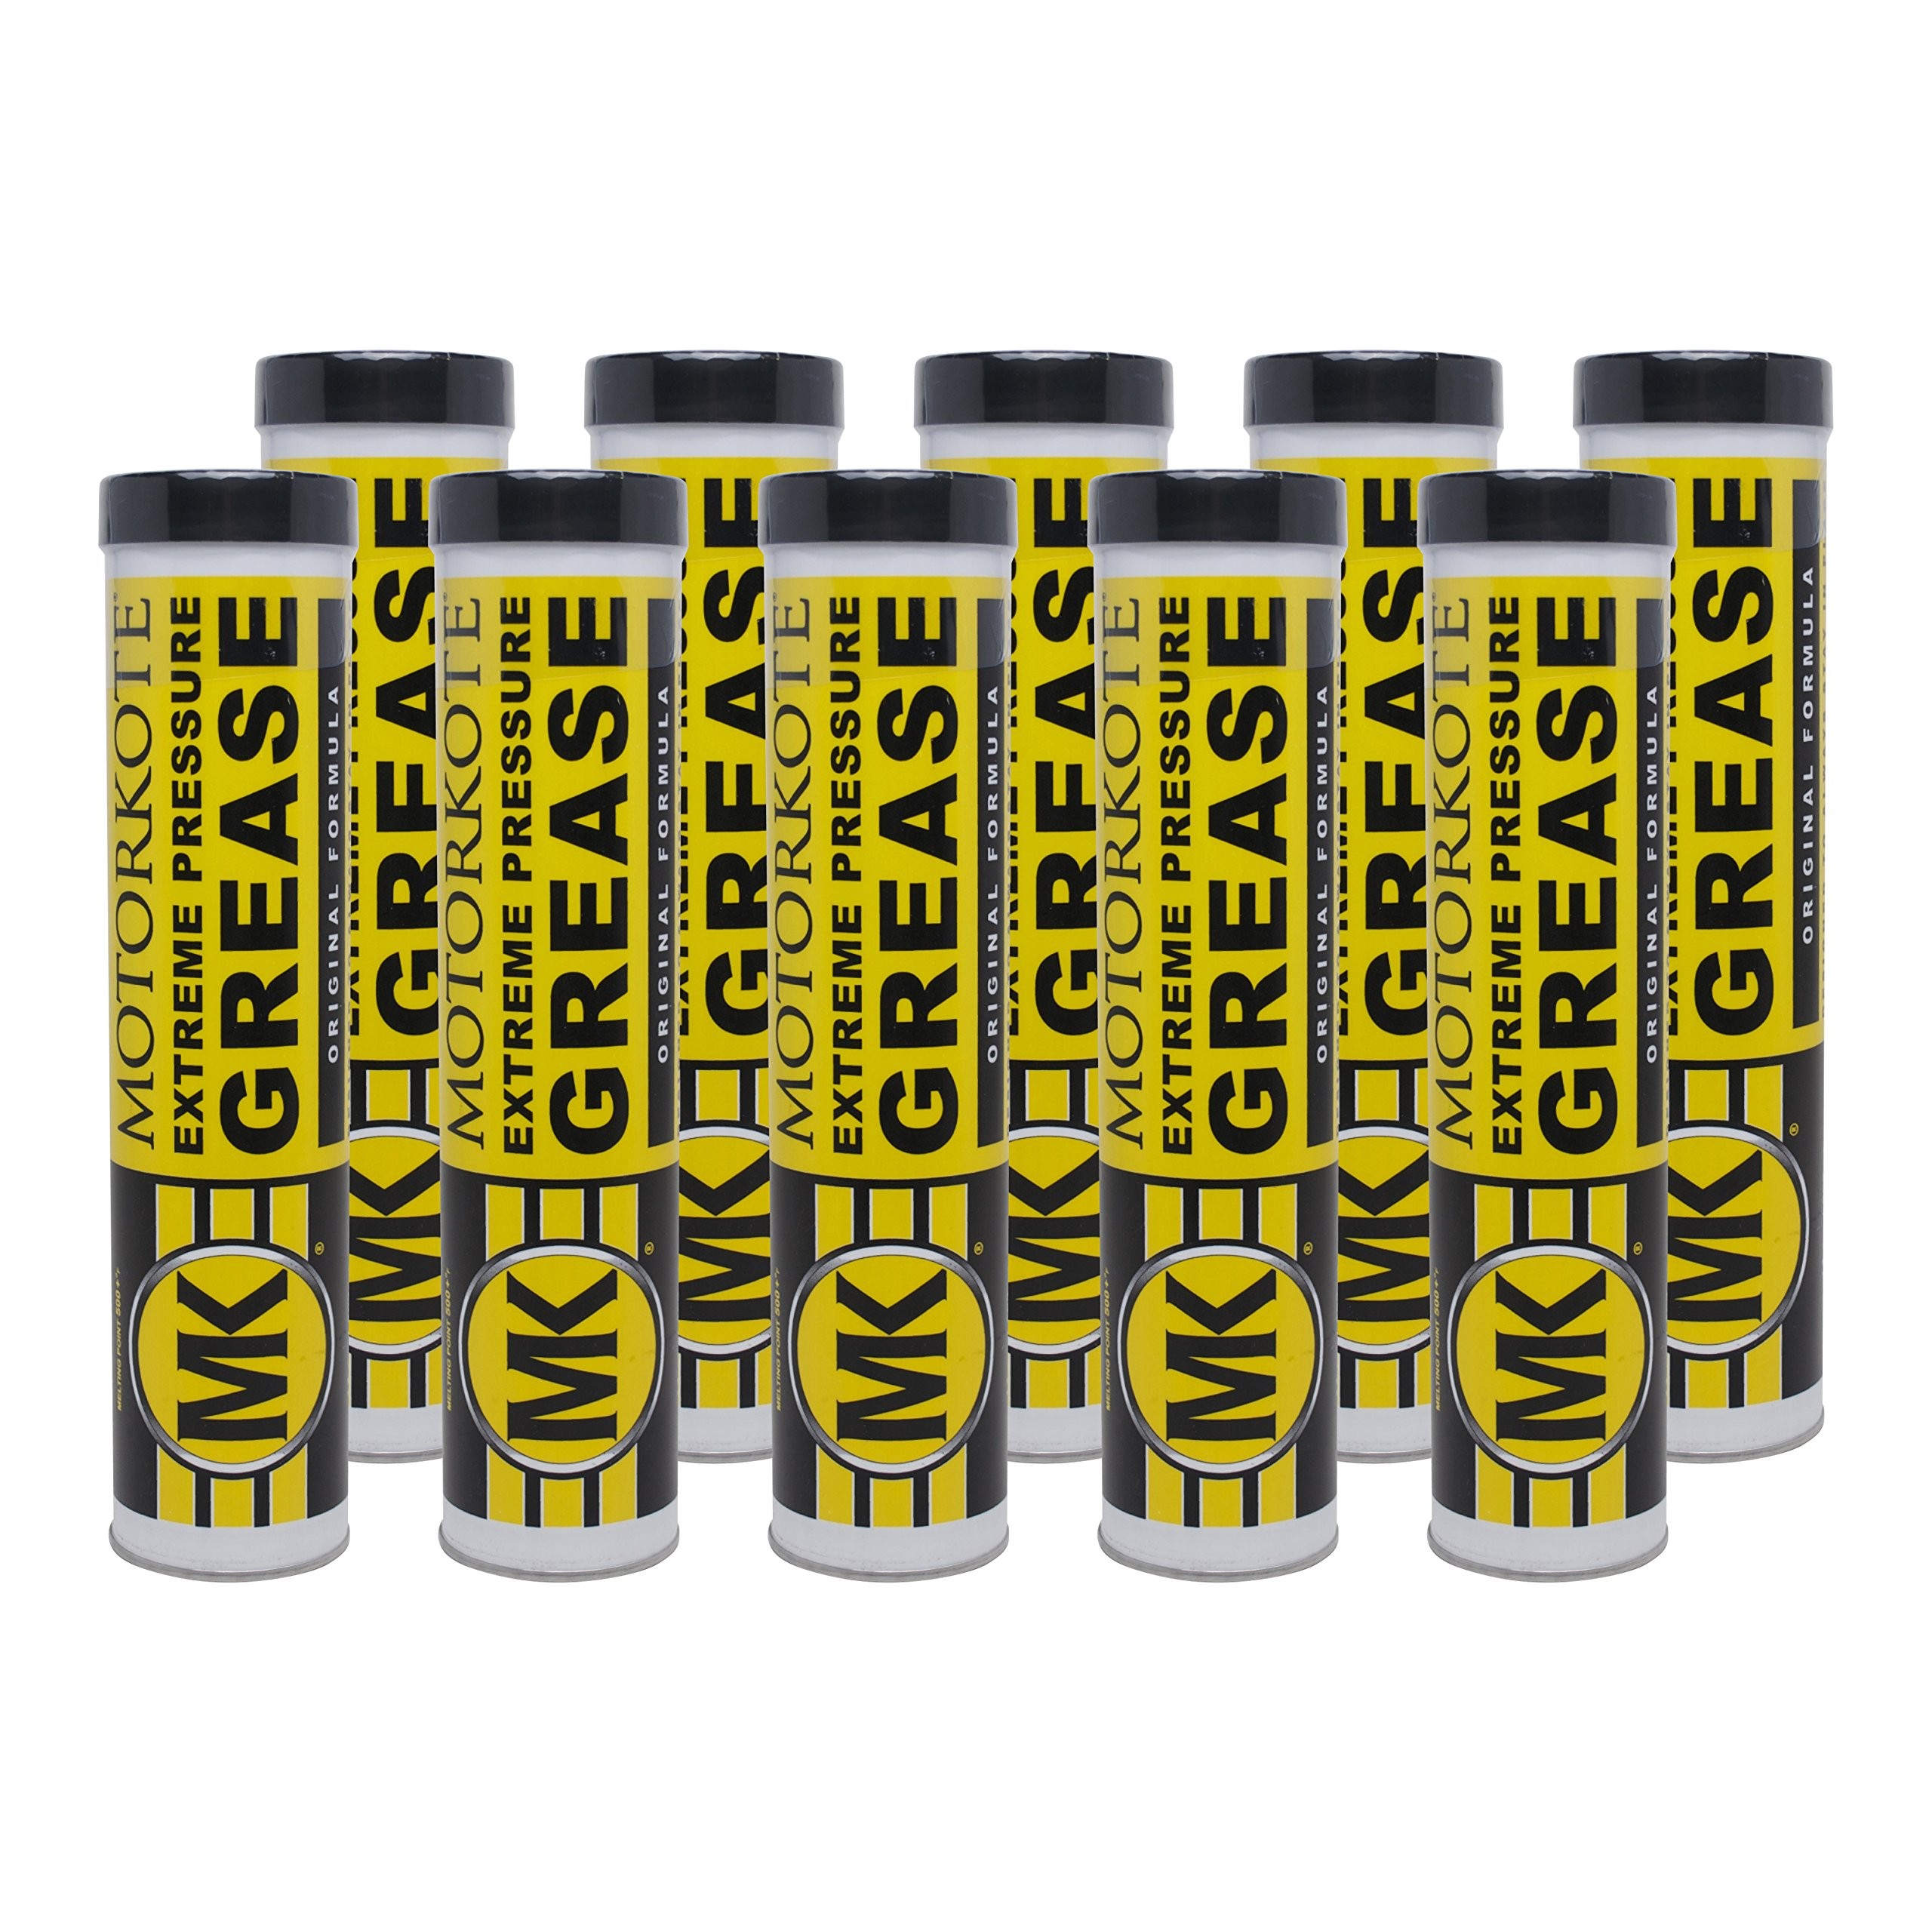 Motorkote MK-20215-10-10PK Multi-Purpose Extreme Pressure Grease, 14-Ounce, 10-Pack by Motorkote